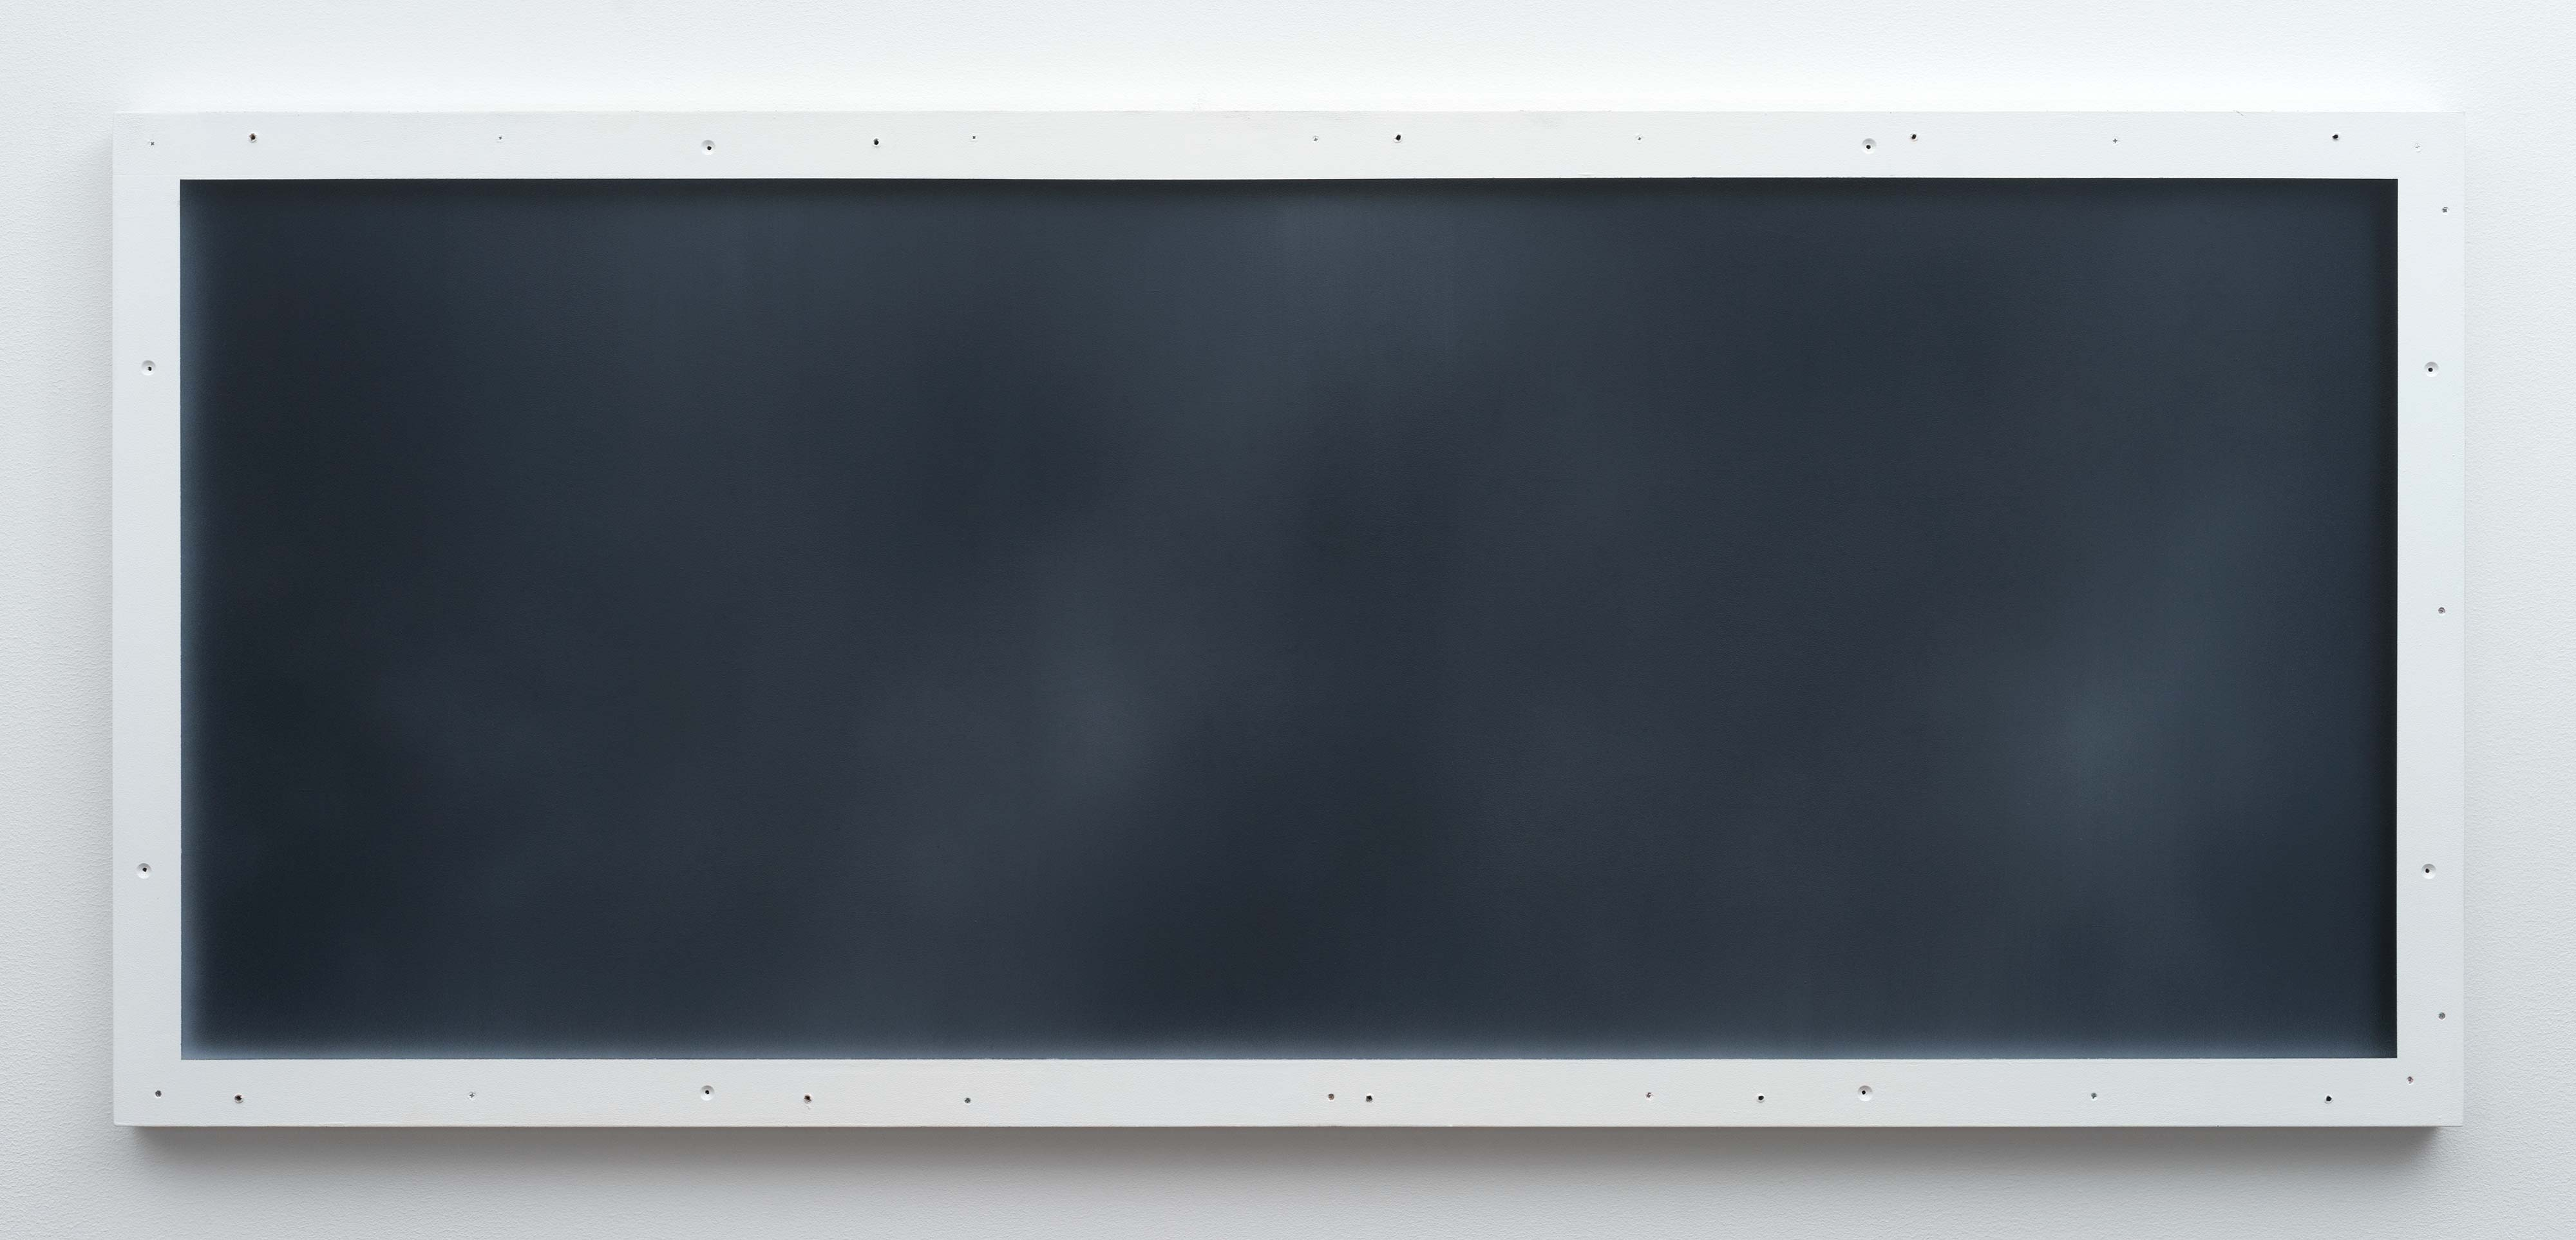 Christopher Page<br>Nocturne (II)<br>2016<br>Oil and acrylic on panel<br>23.6 x 54.3 in (60 x 138 cm)